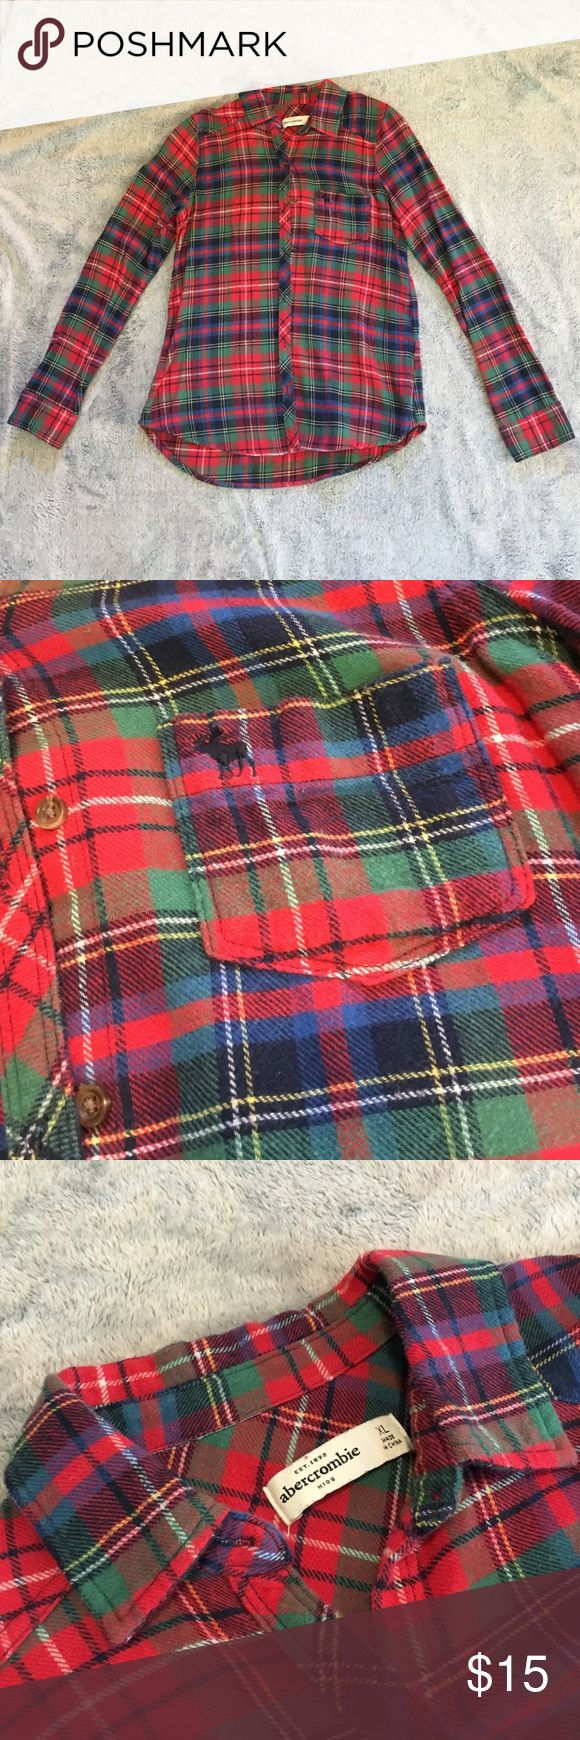 25 best ideas about green flannel on pinterest green for Super soft flannel shirts